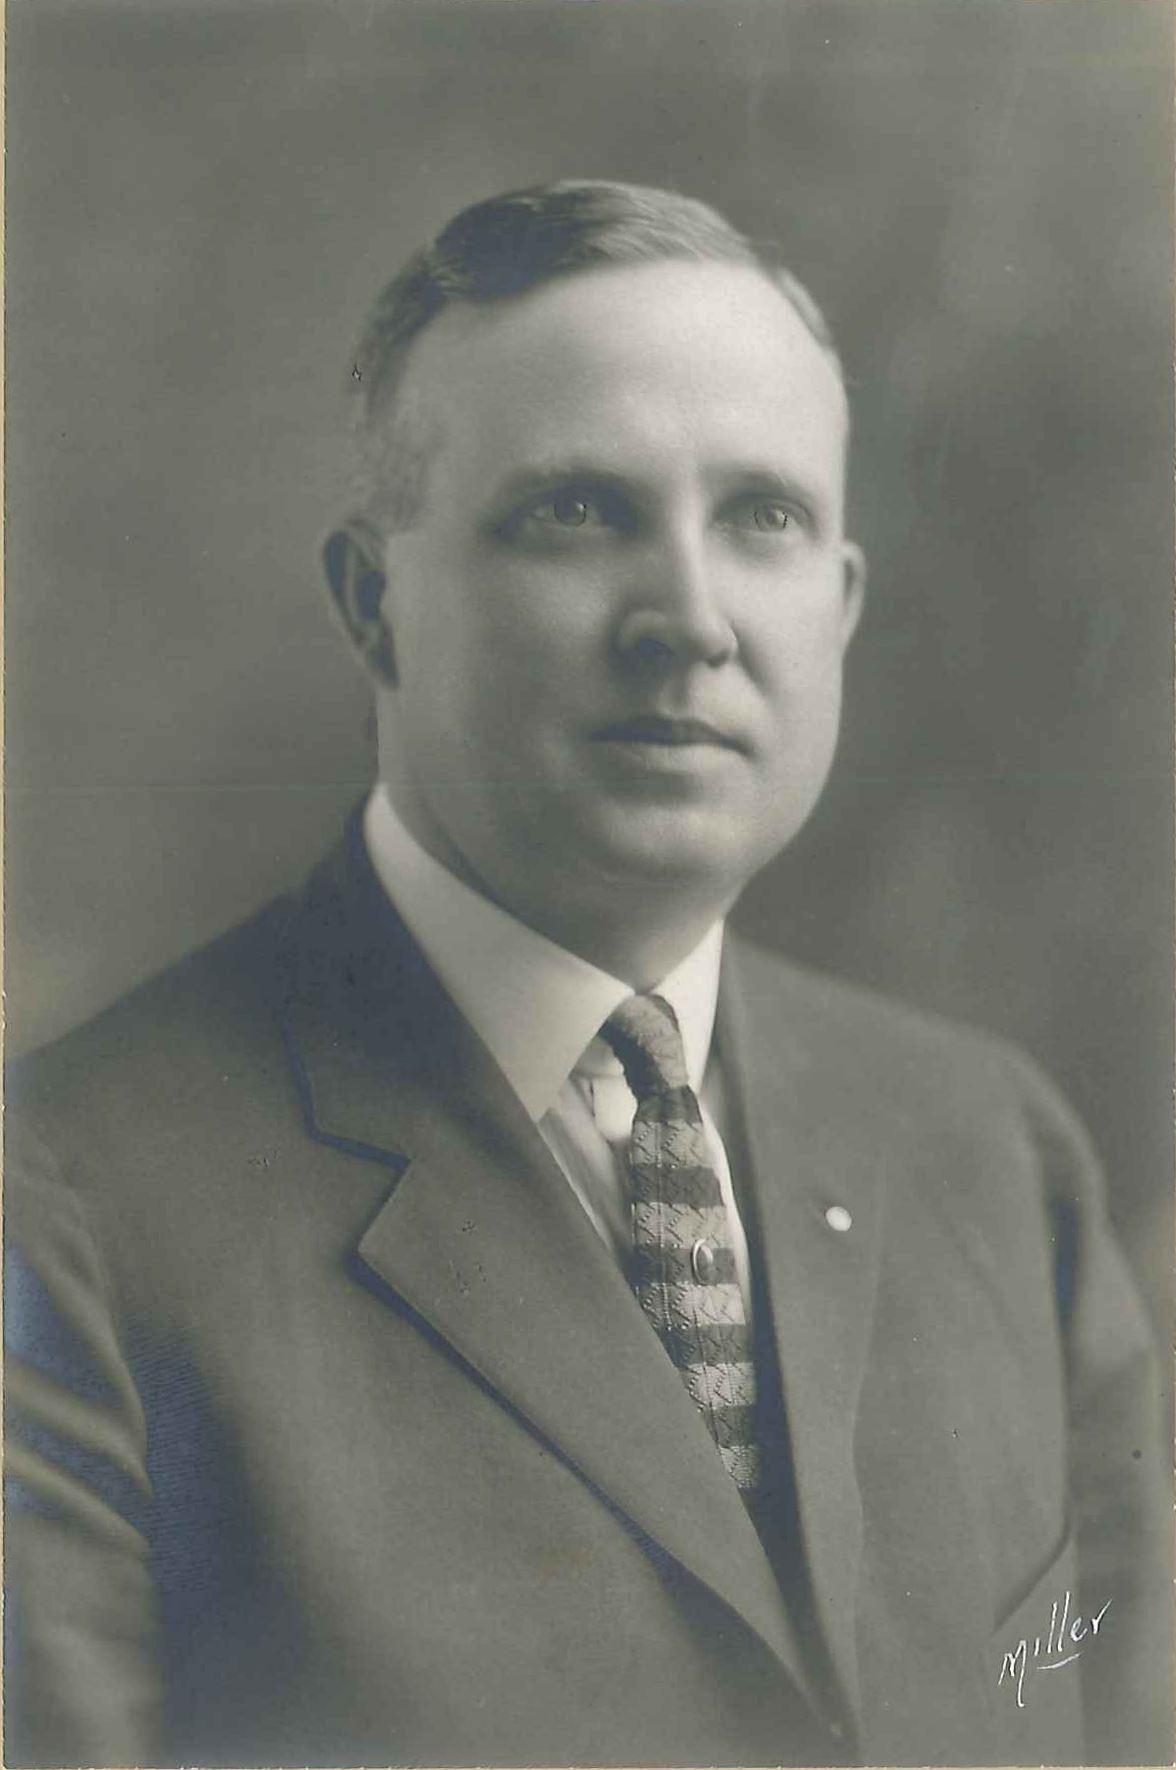 Image of J P Mize